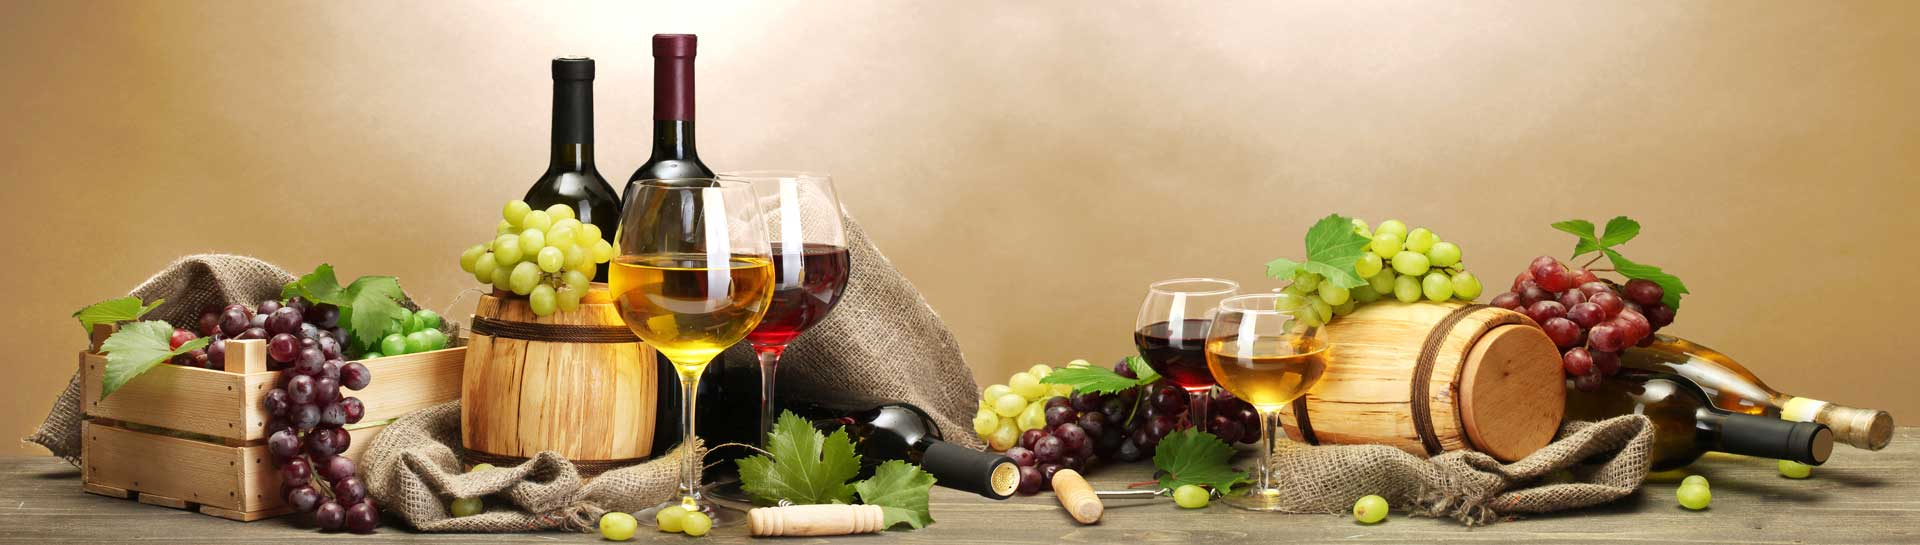 wine and cheese with barrels